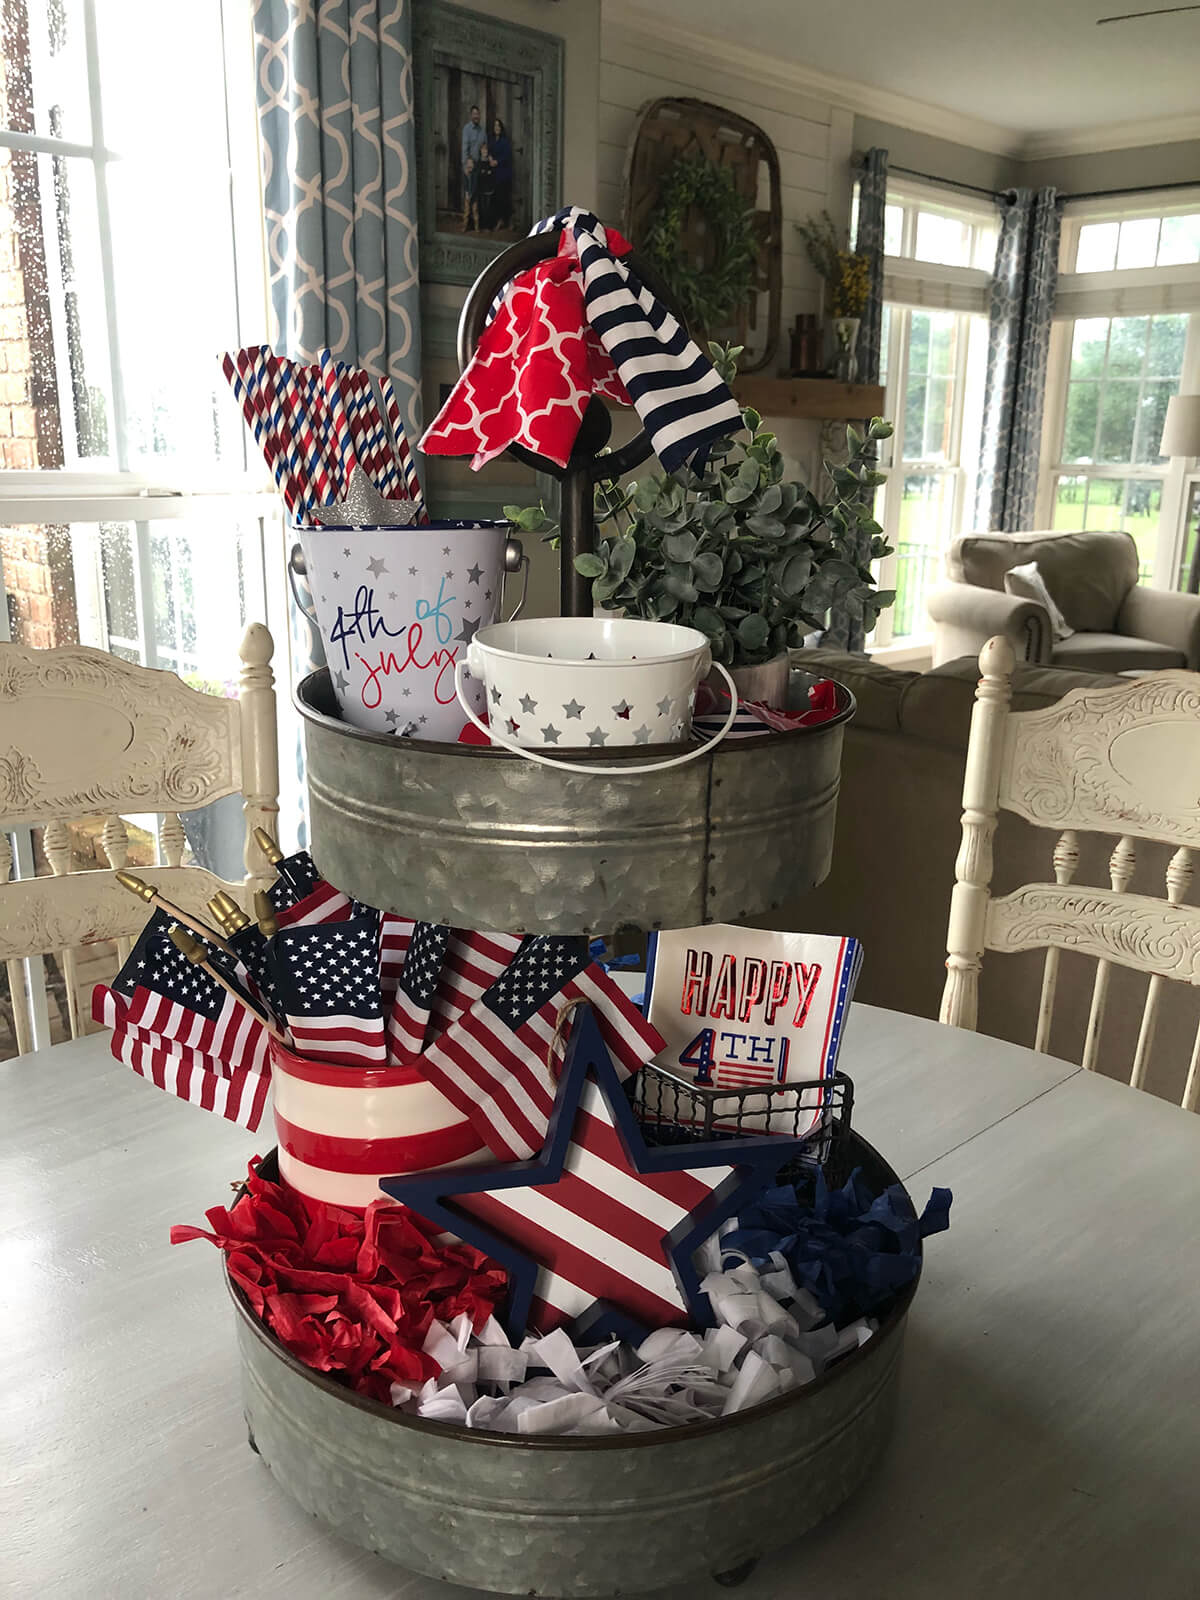 Multi-Tiered Tray Stuffed with Patriotic Goodies